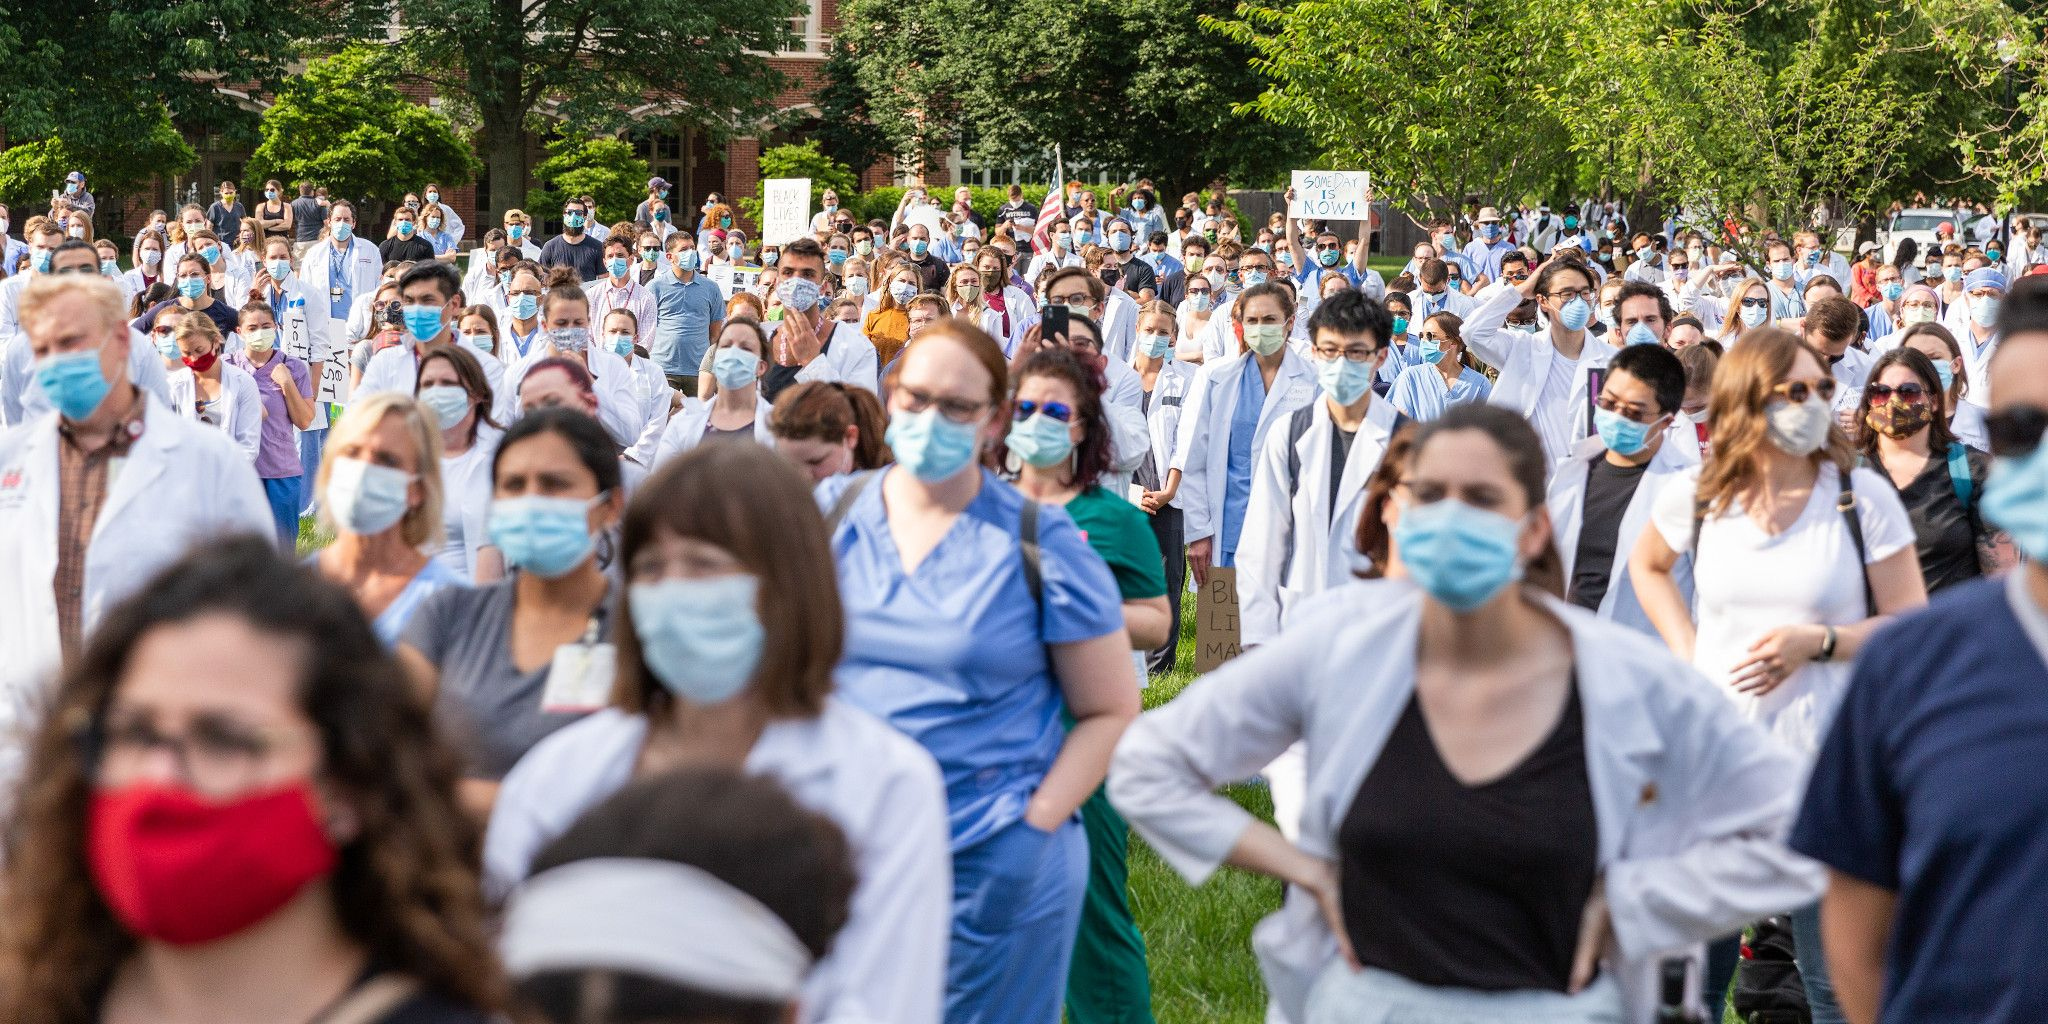 A large group of people stand in a grassy area wearing face masks, medical scrubs and coats